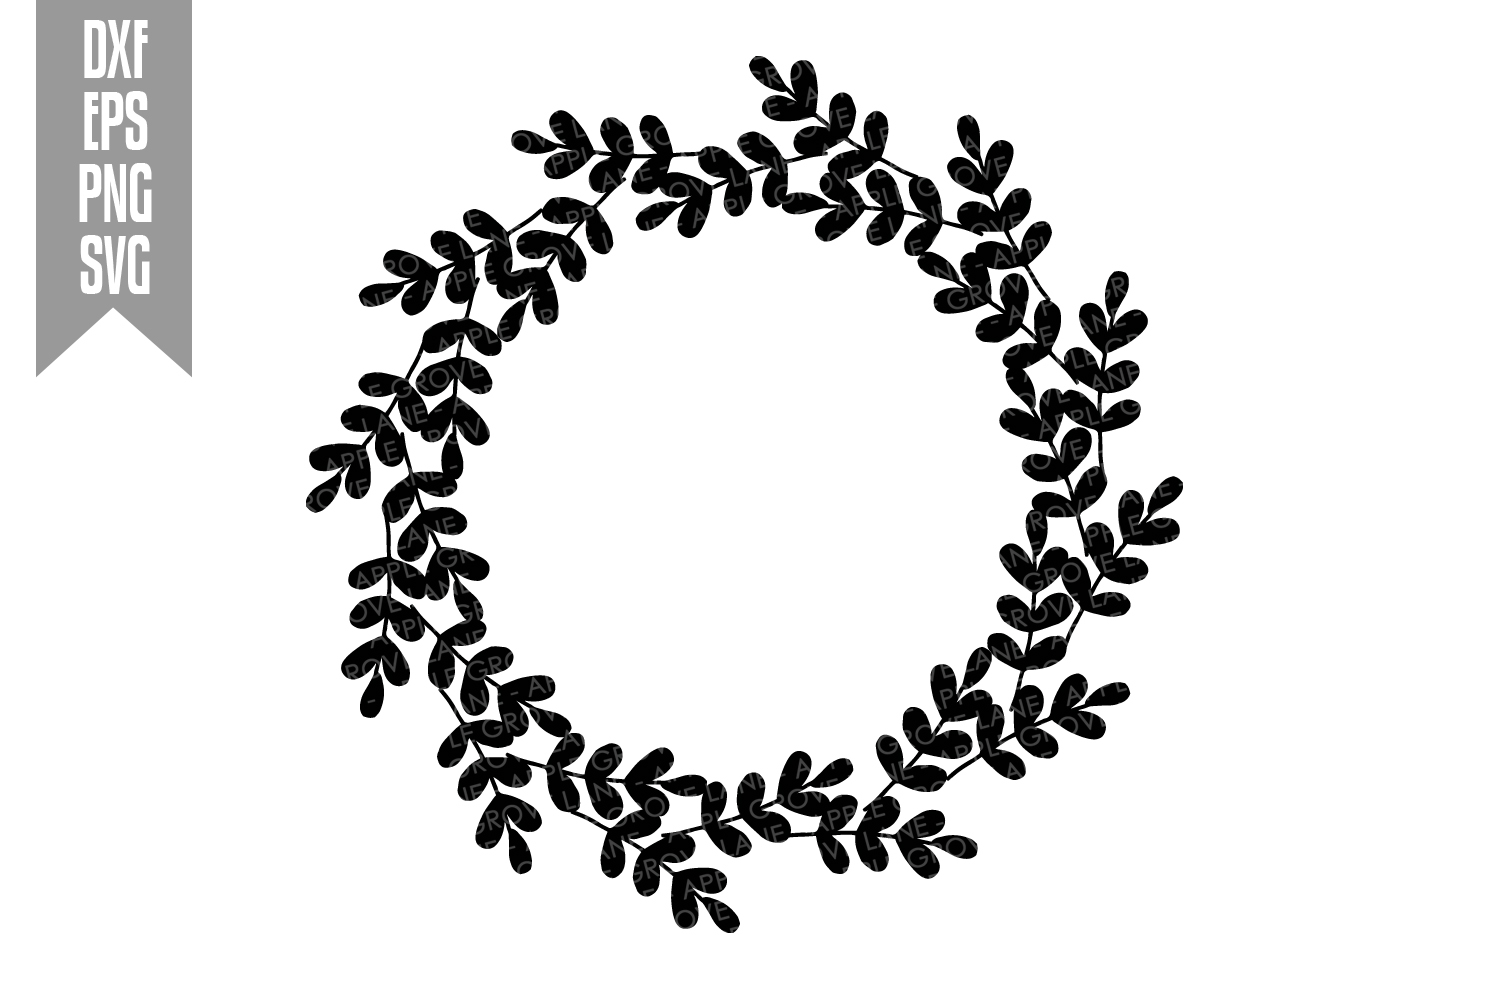 Wreath Svg Bundle - 6 designs included - Svg Cut Files example image 3